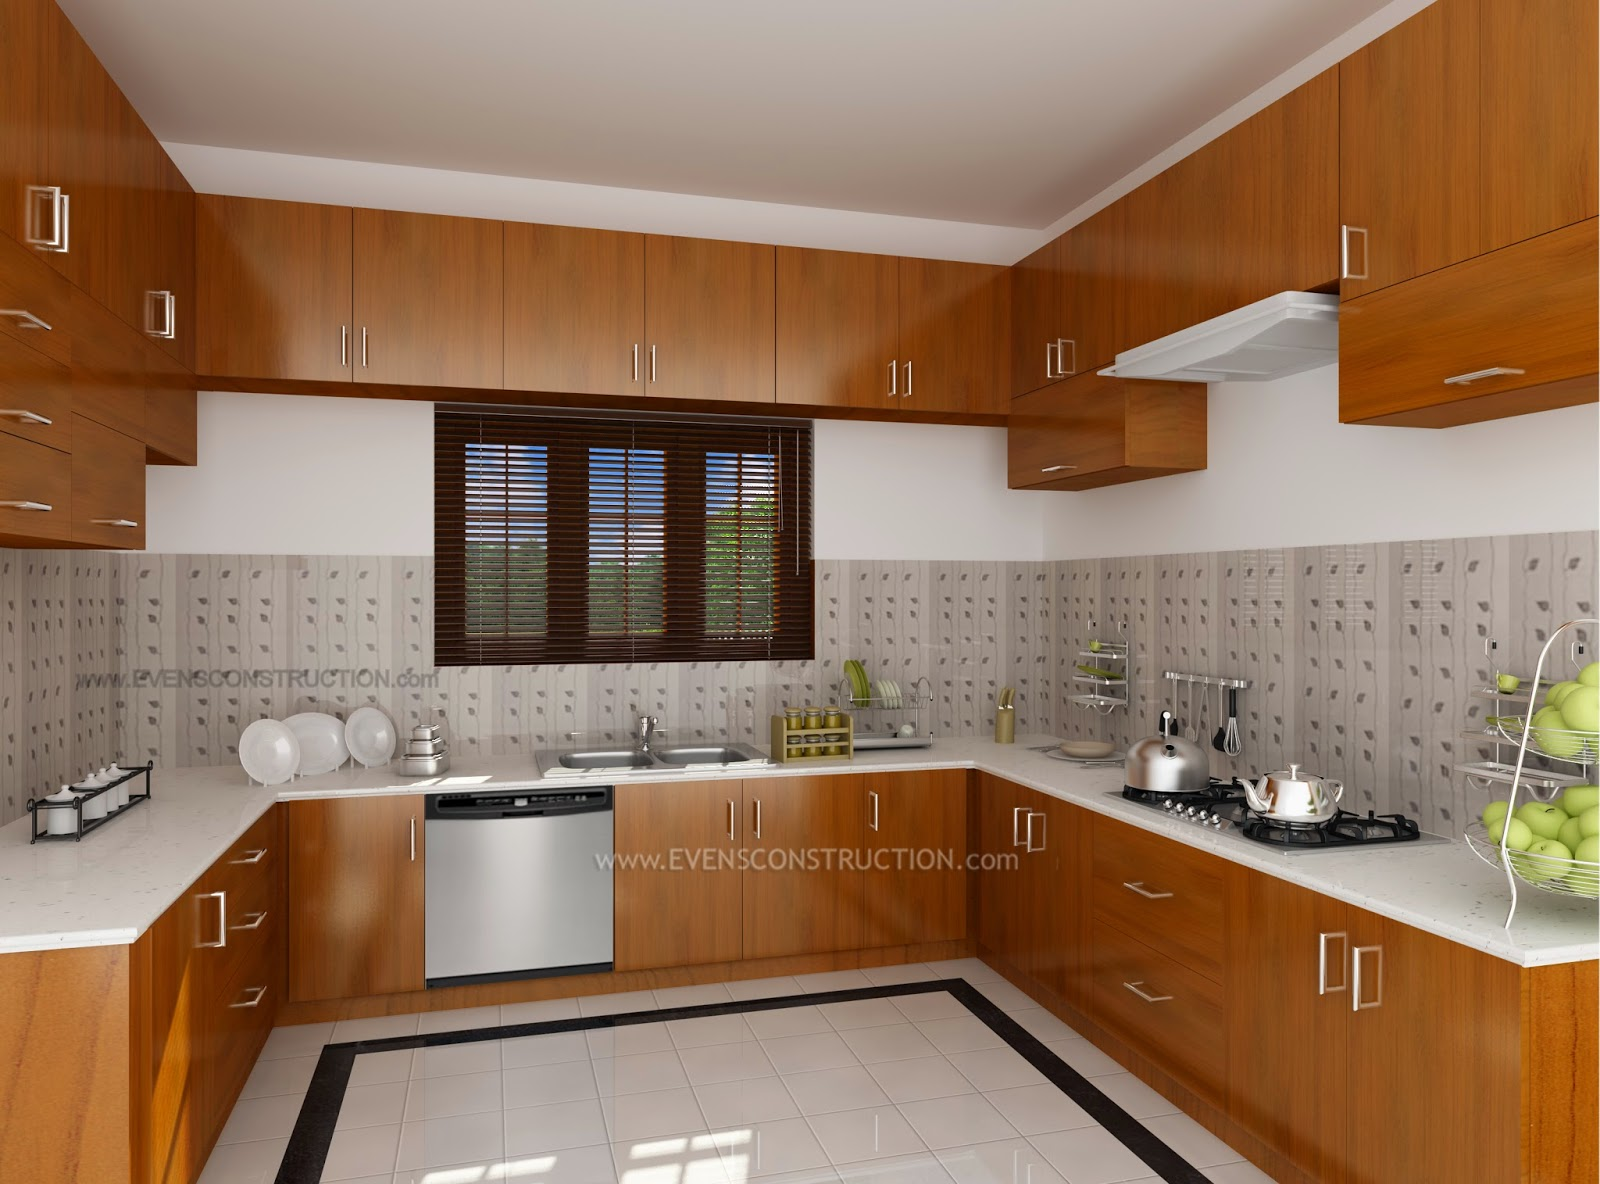 Evens construction pvt ltd october 2014 for House interior design kerala photos